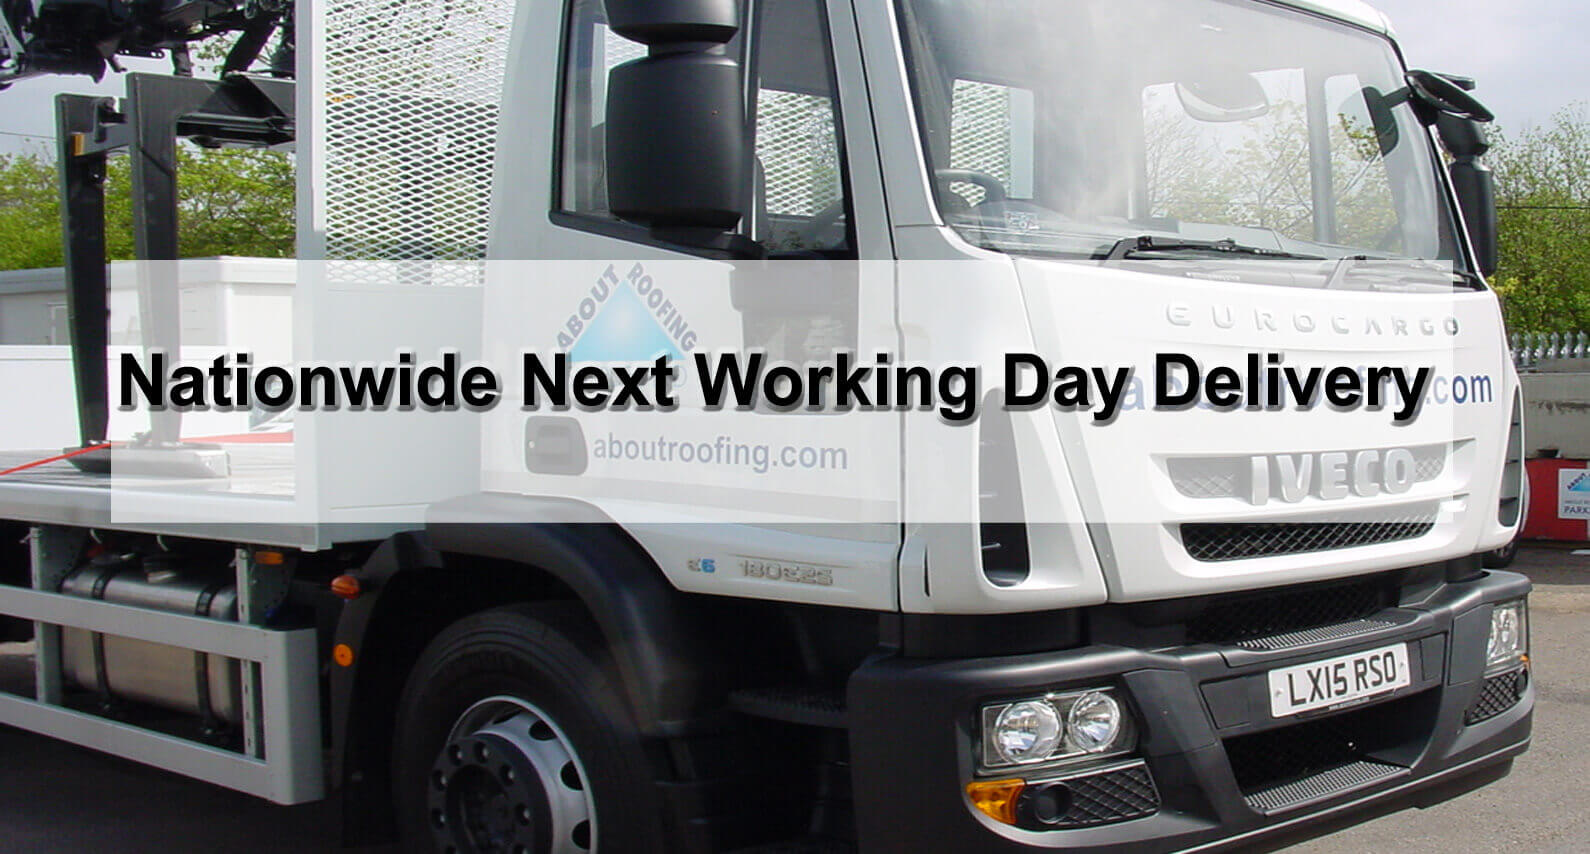 Nationwide Next Working Day Delivery - About Roofing Supplies